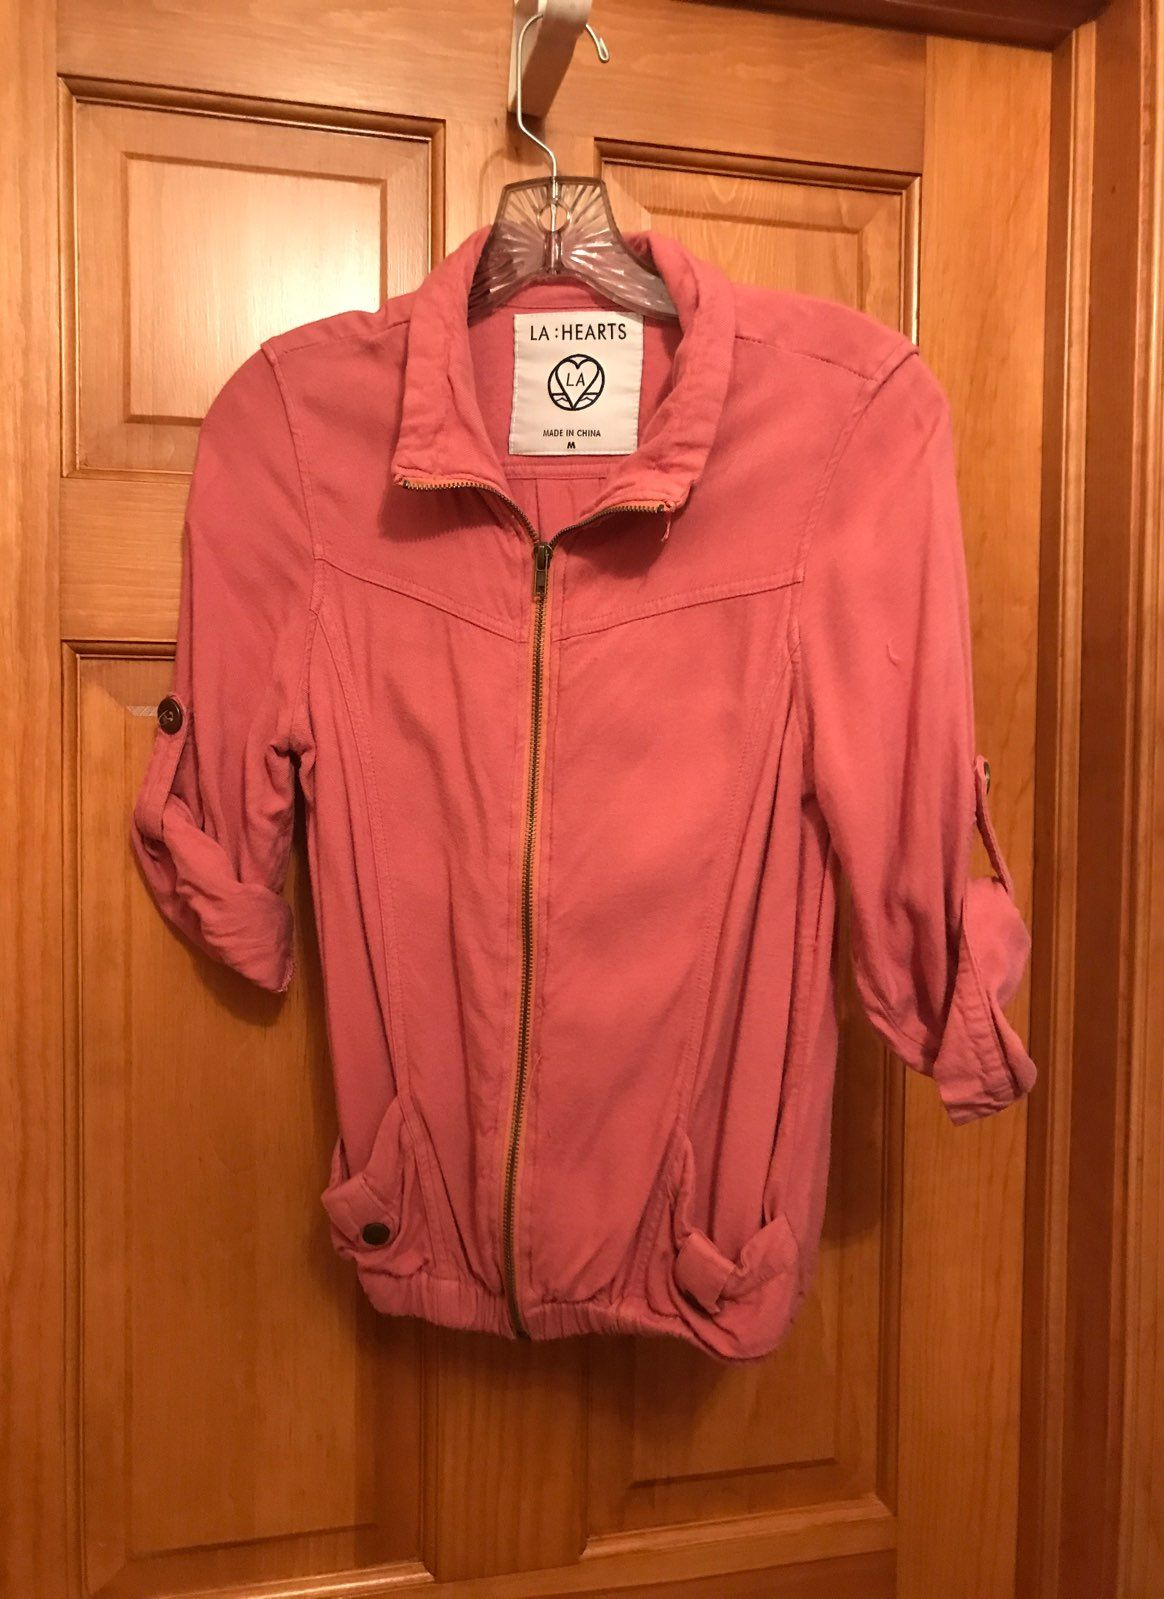 pink zip up sweater - Mercari: BUY & SELL THINGS YOU LOVE